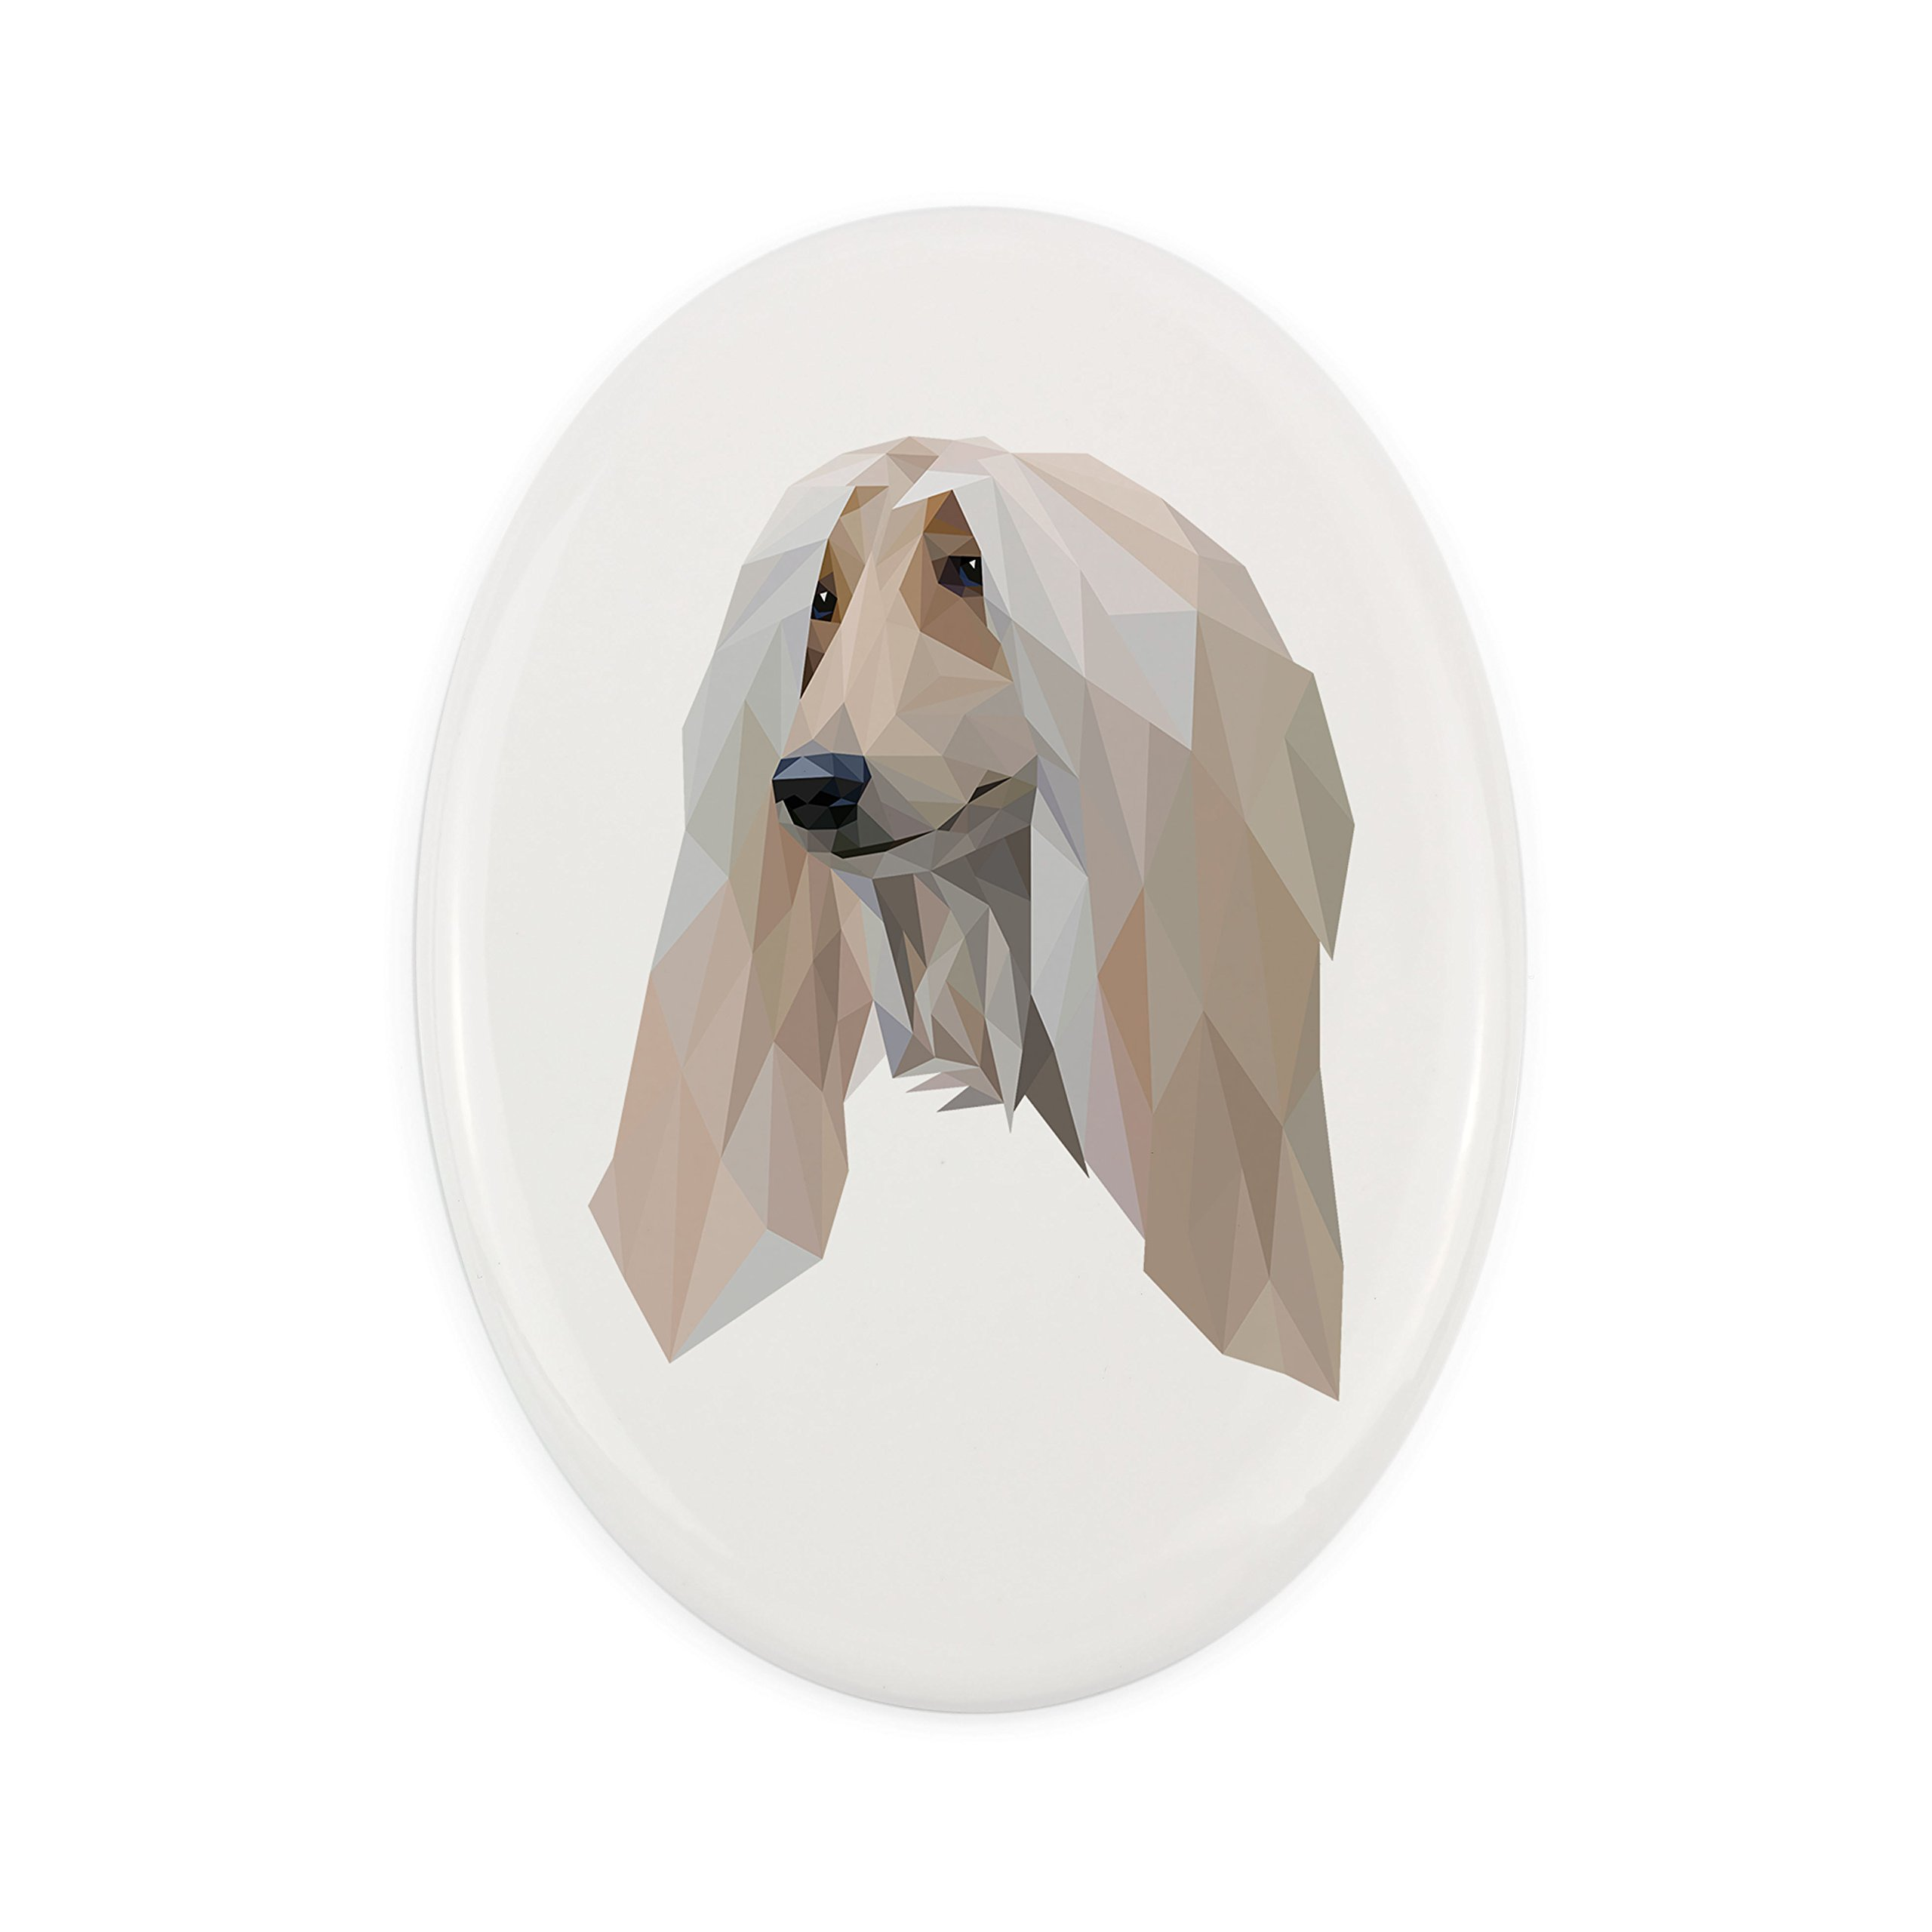 ArtDog Ltd. Afghan Hound, Tombstone ceramic plaque with an image of a dog, geometric